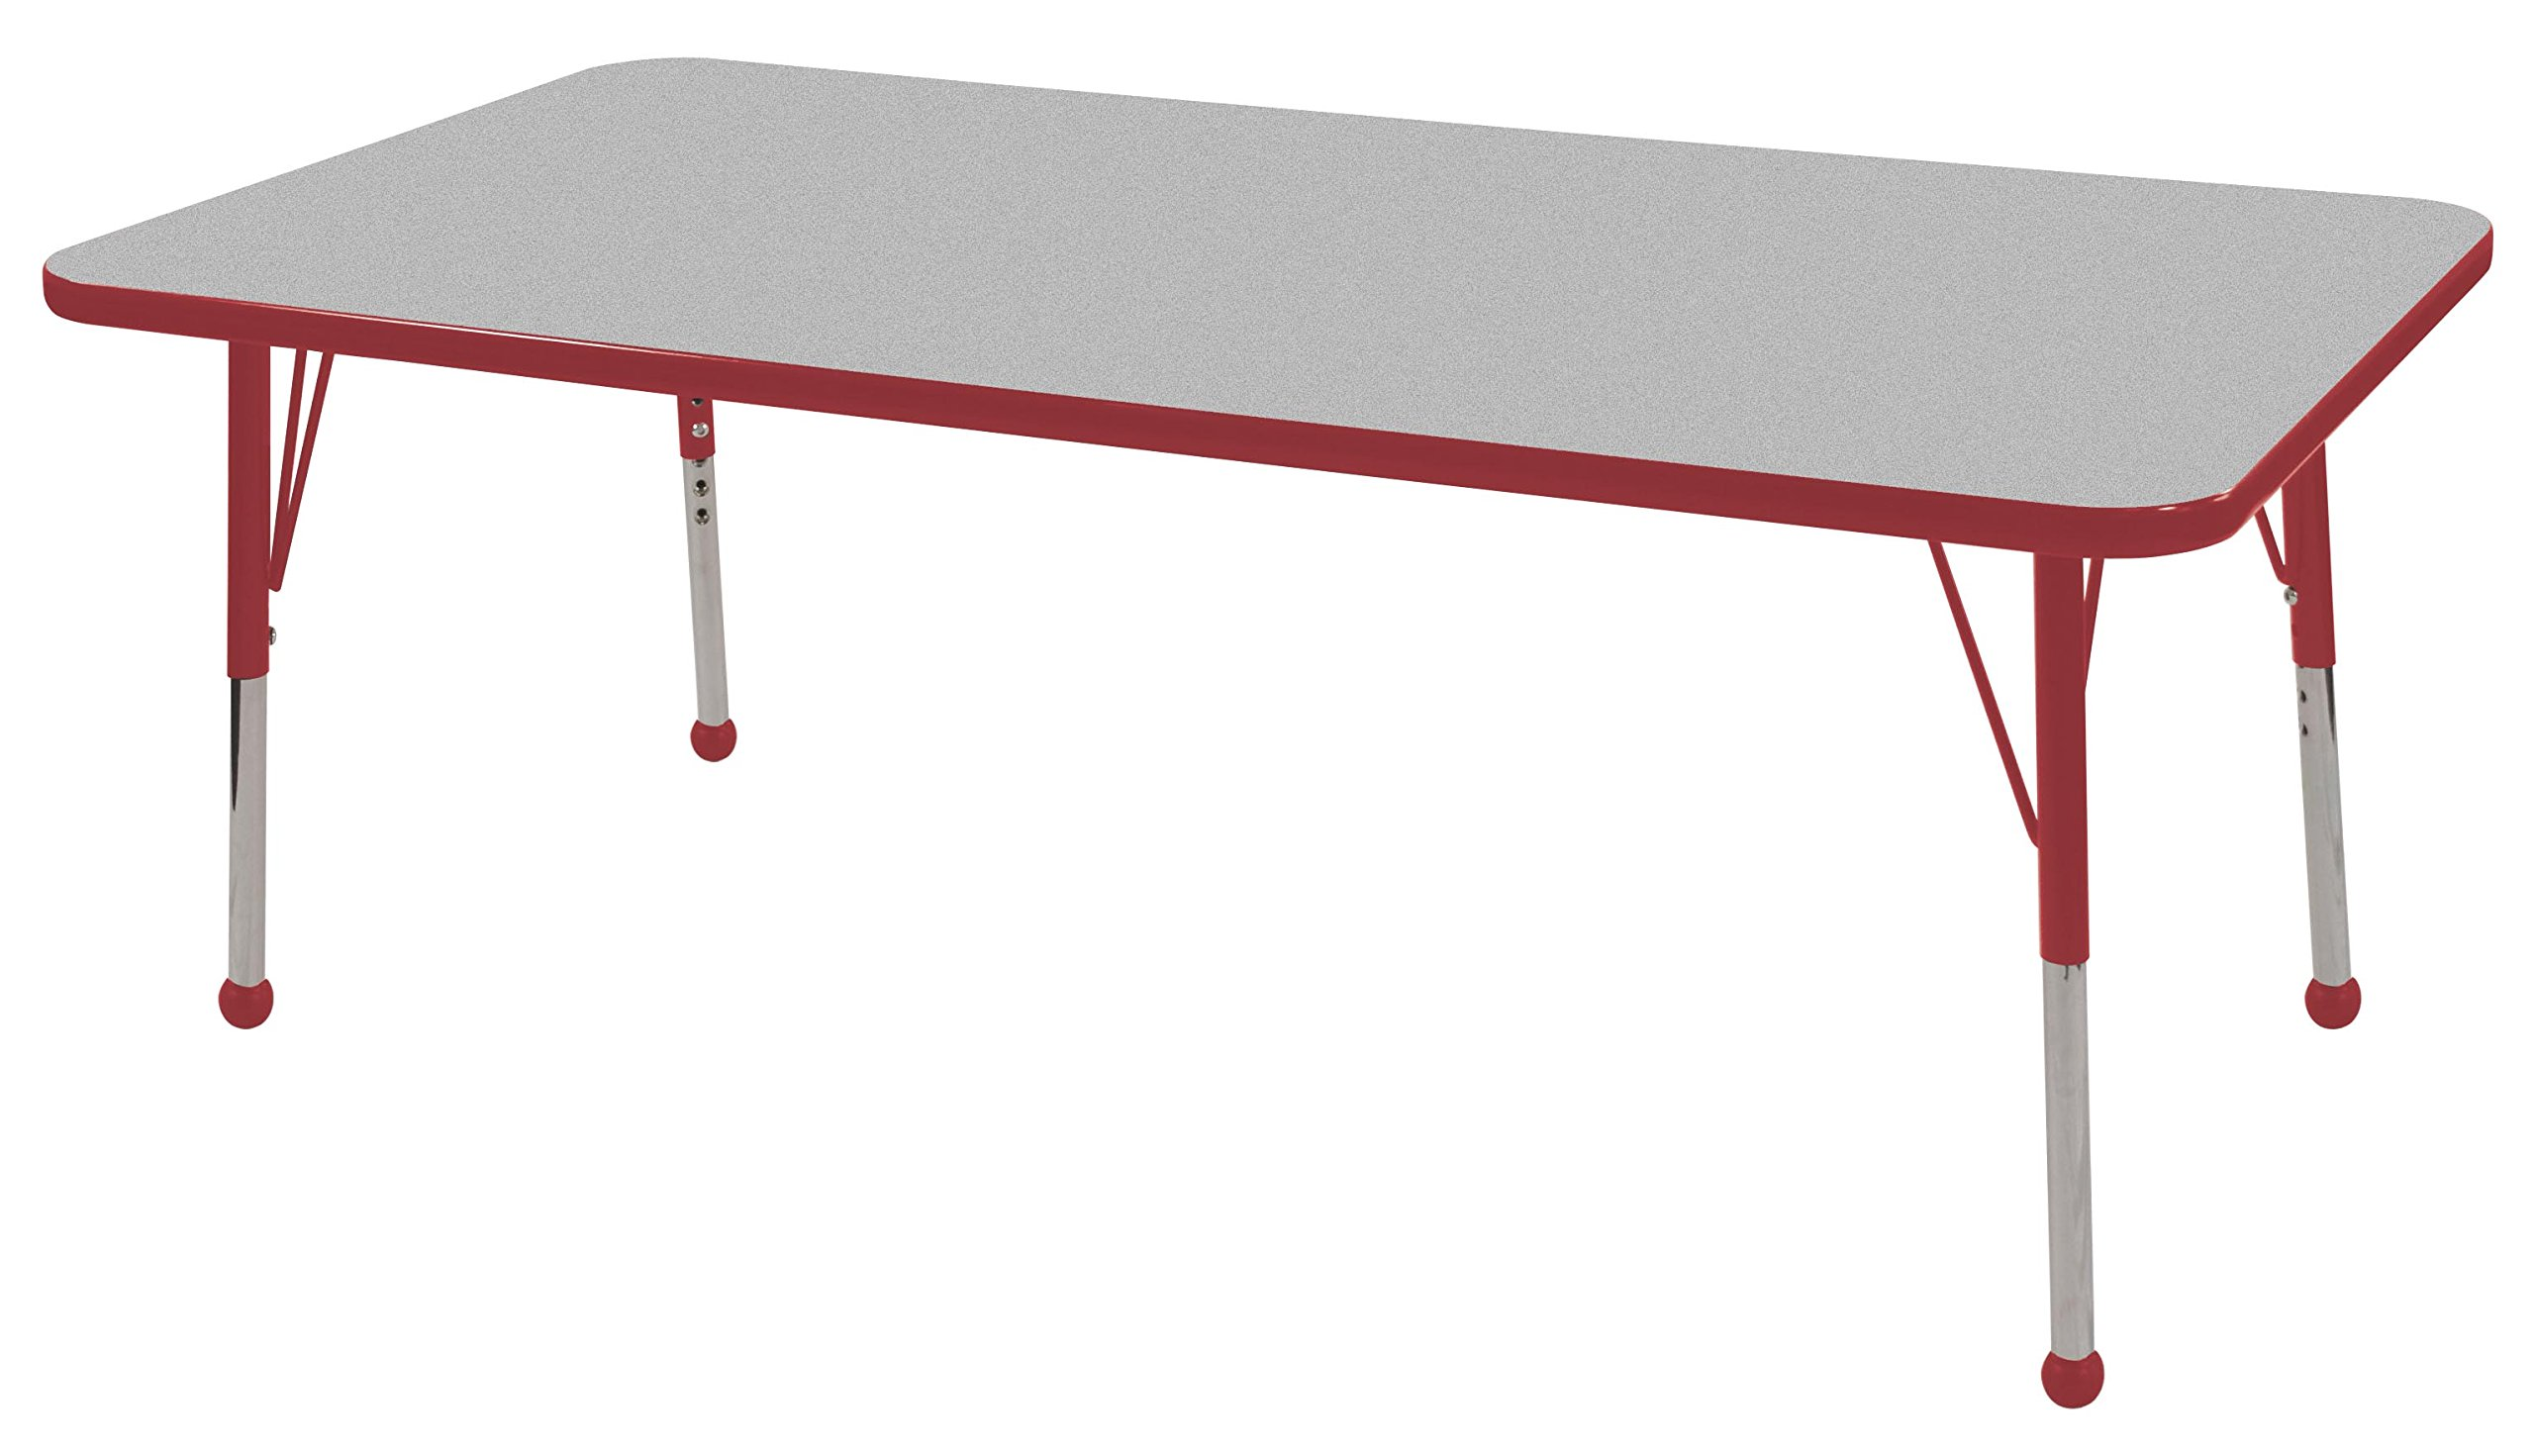 ECR4Kids Mesa Thermo-fused 30'' x 60'' Rectangular School Activity Table, Standard Legs w/ Ball Glides, Adjustable Height 19-30 inch (Grey/Red) by ECR4Kids